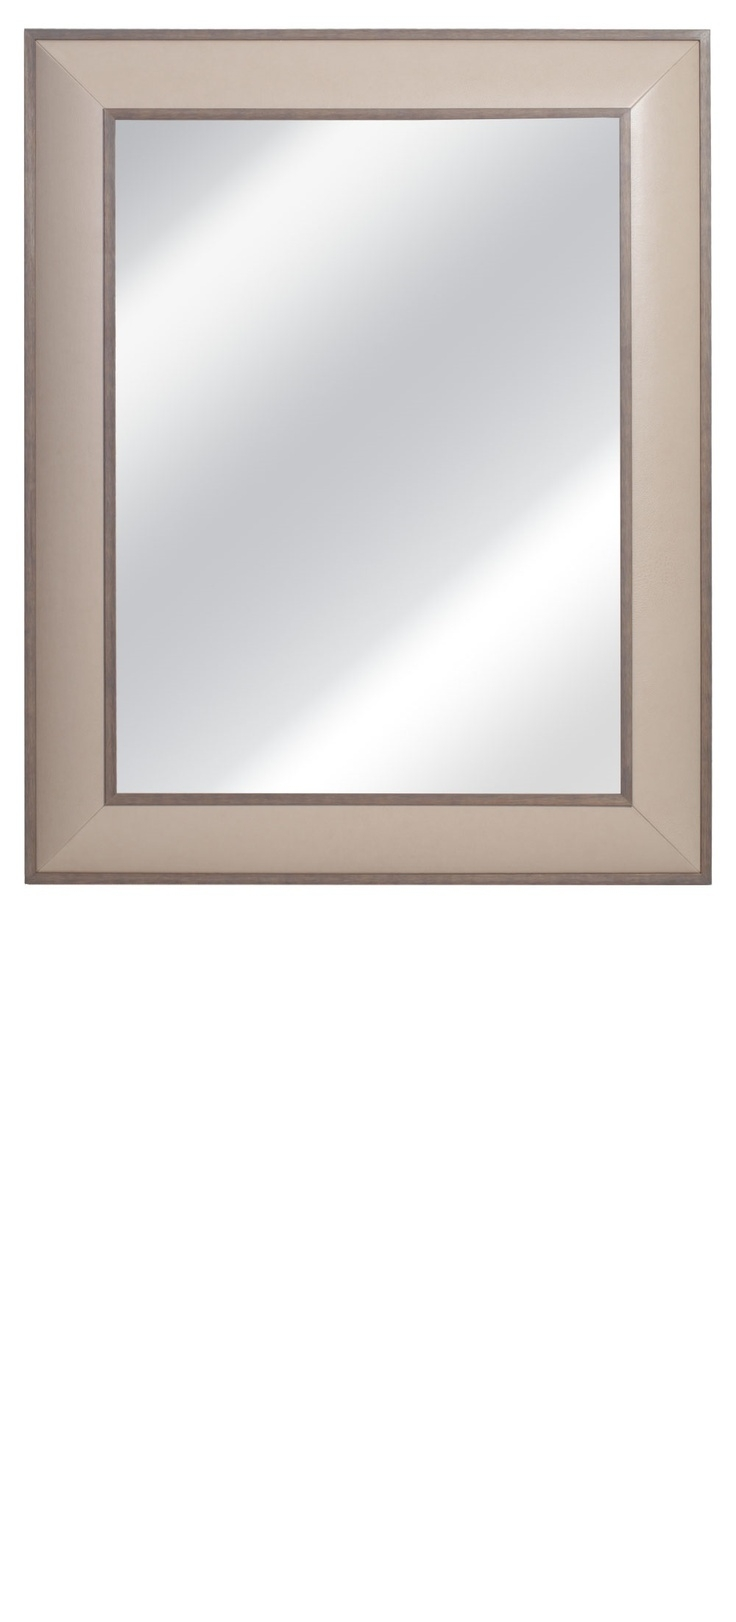 15 Best Images About Leather Wall Mirrors On Pinterest In Leather Mirrors (View 15 of 15)